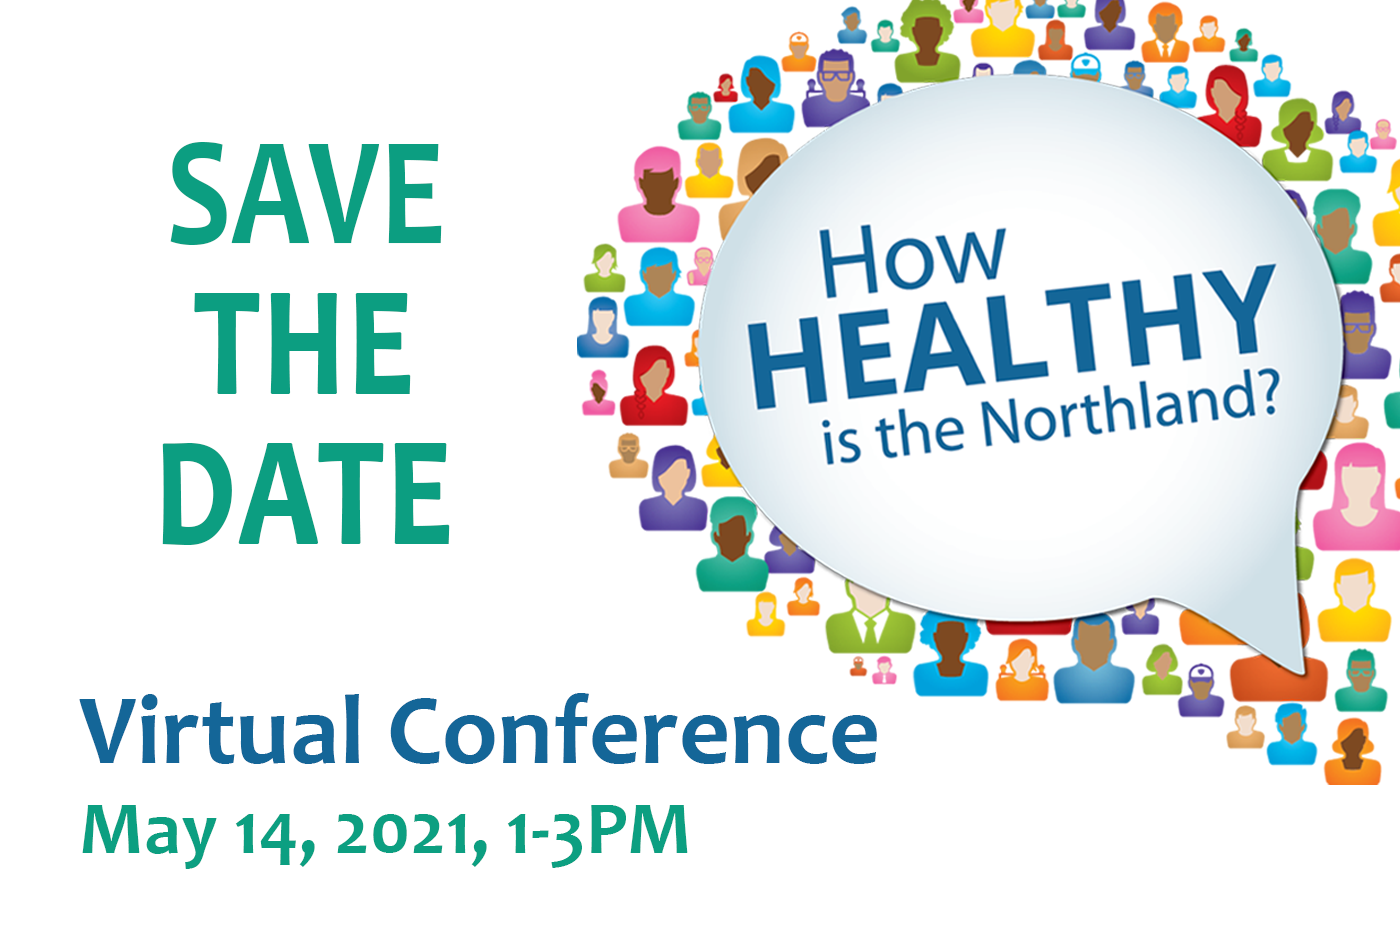 Save the Date for the Virtual Conference May 14, 2021, 1-3PM